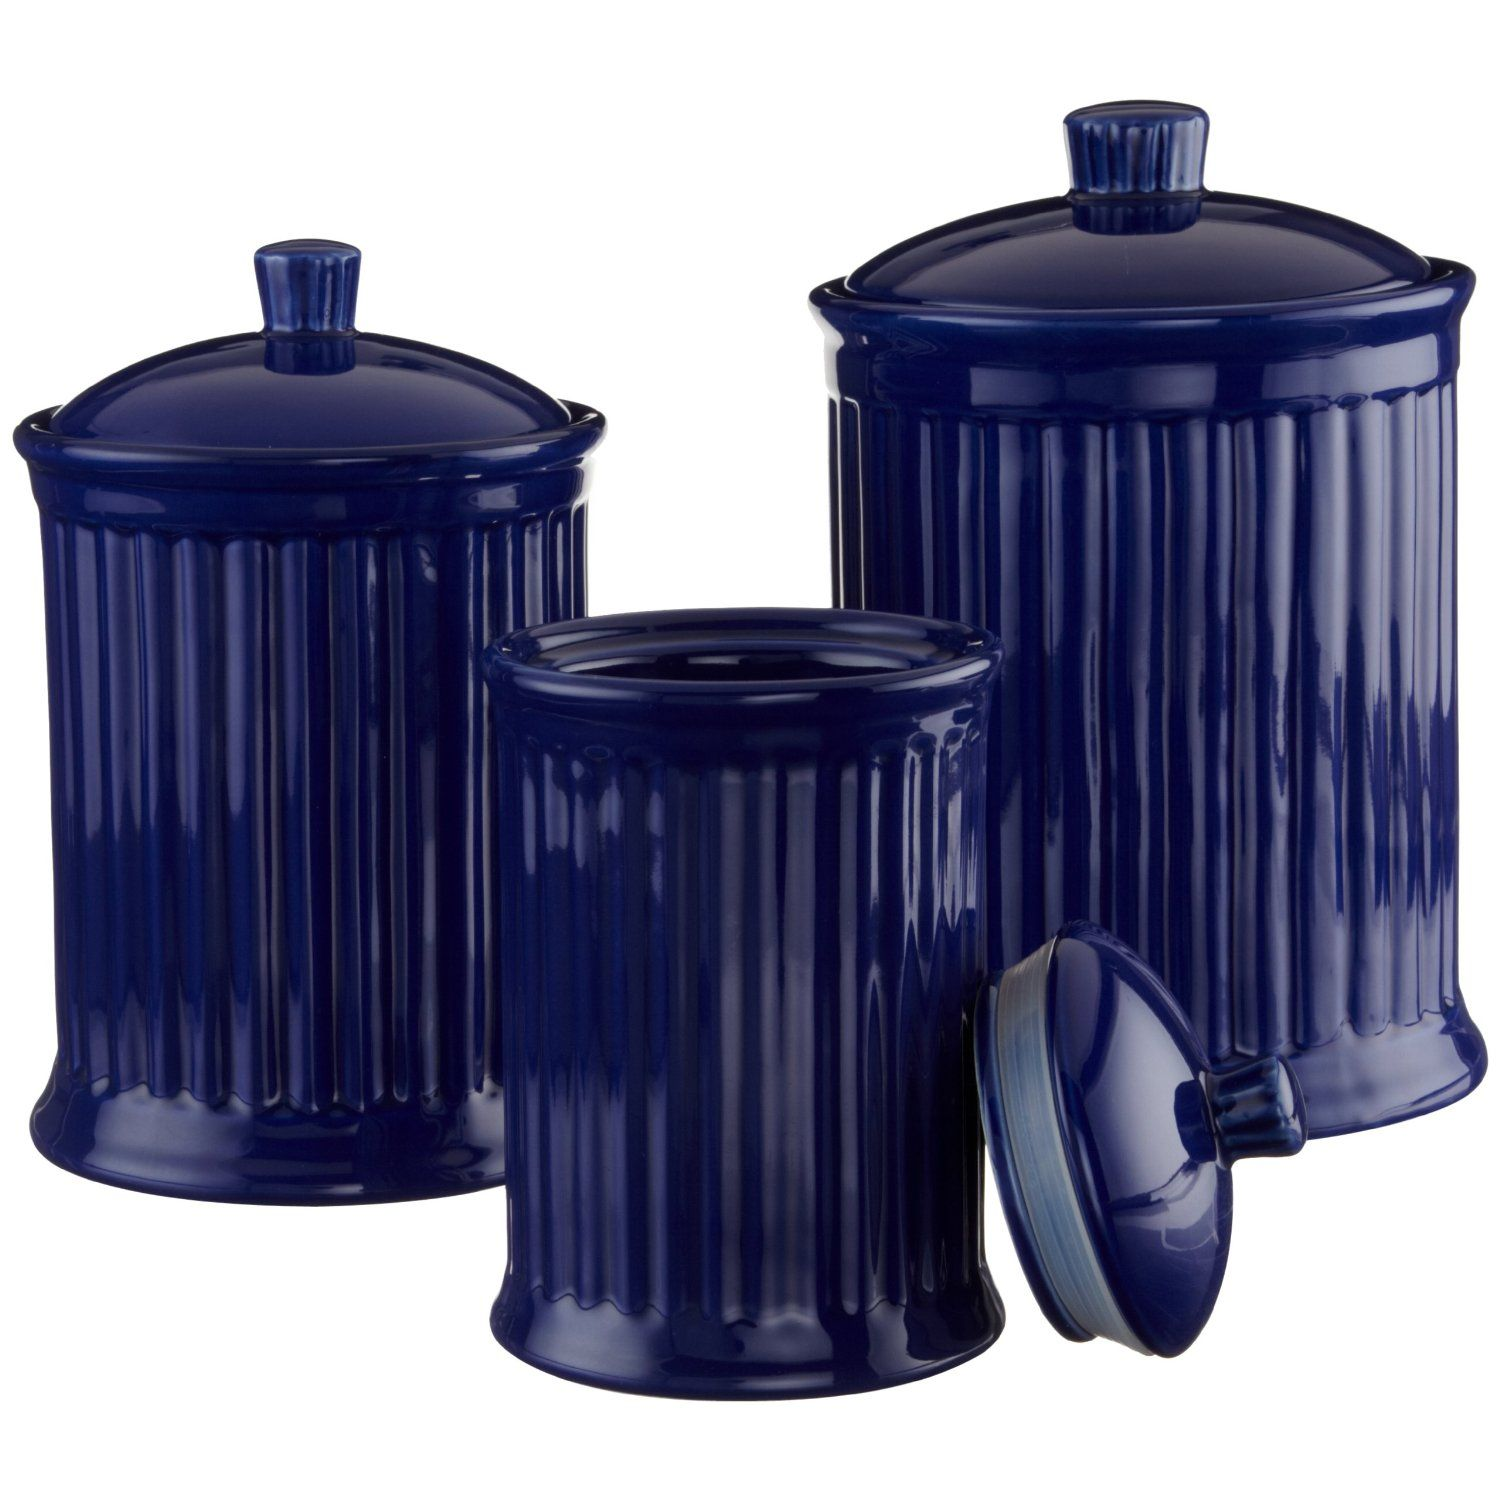 cobalt blue kitchen have a cobalt blue canister set with cobalt blue kitchen have a cobalt blue canister set with cannisters very similiar to